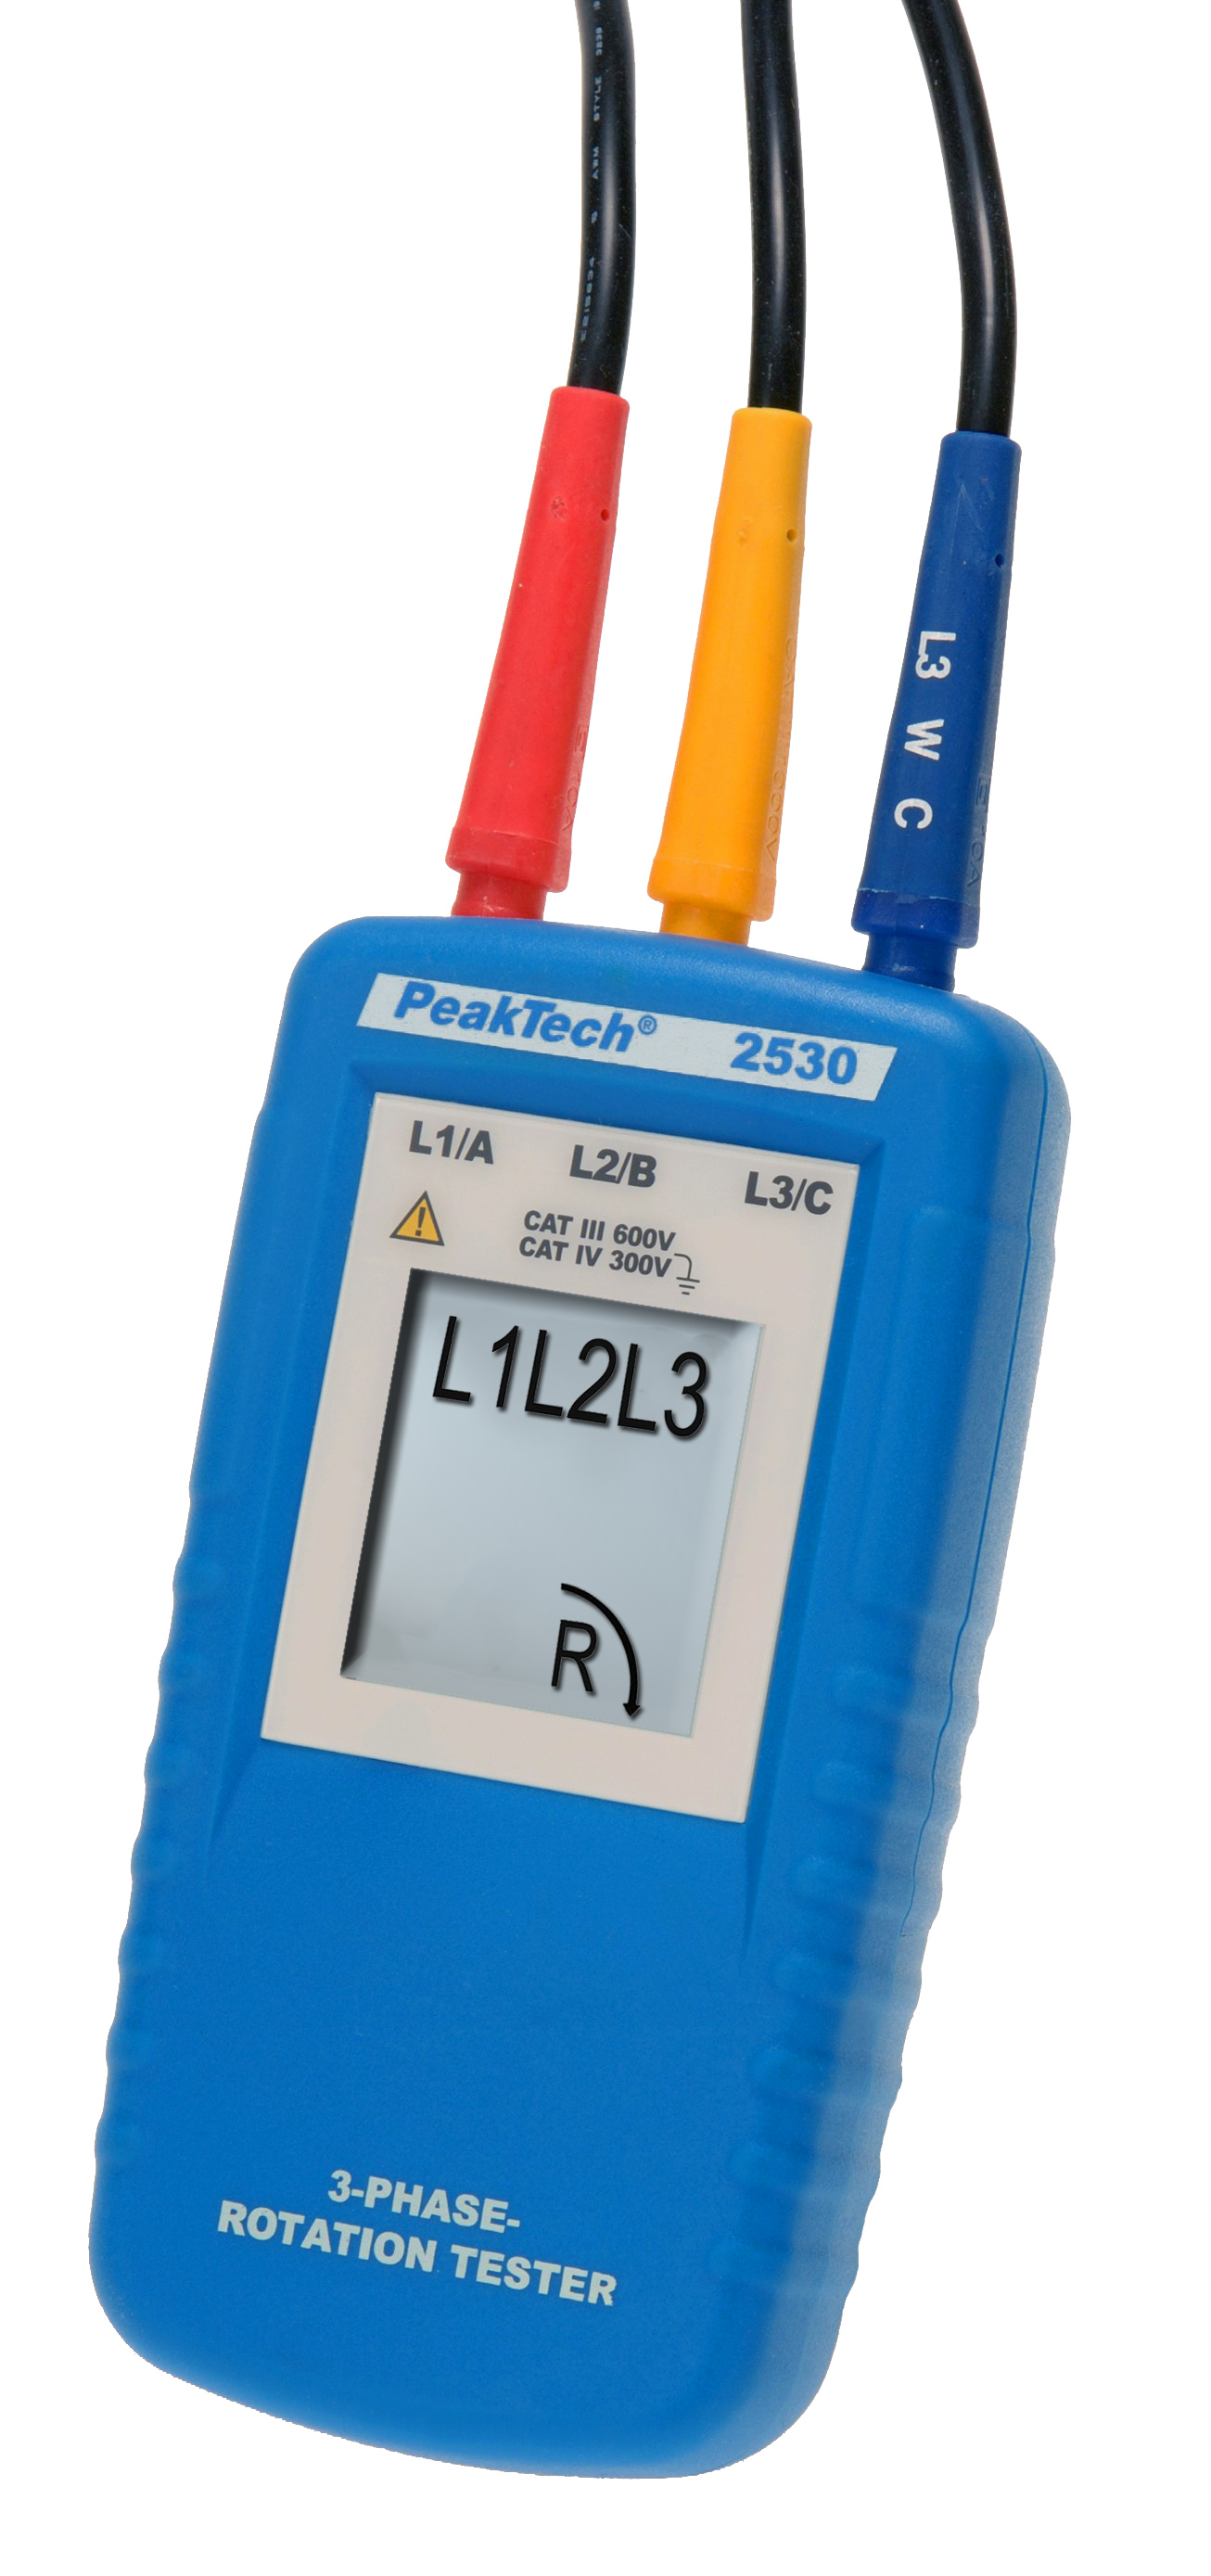 «PeakTech® P 2530» 3-phase direction indicator with LCD display